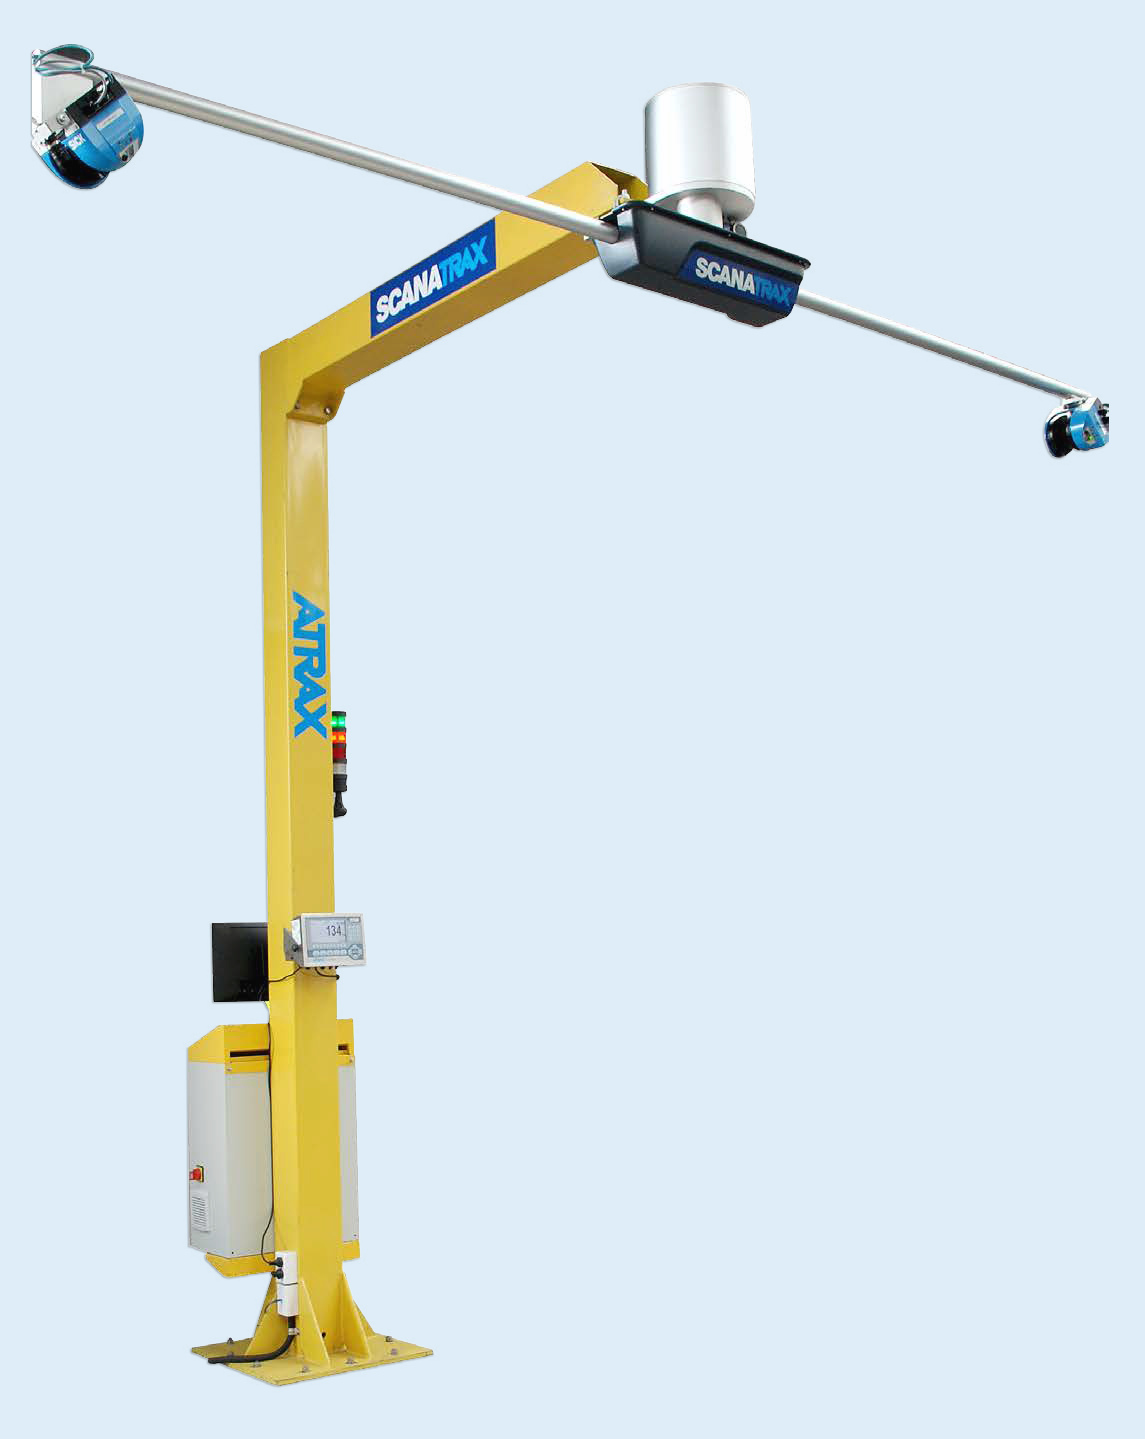 Atrax Scanatrax Cargo Dimensioning System - Main View   Dimensioning Products